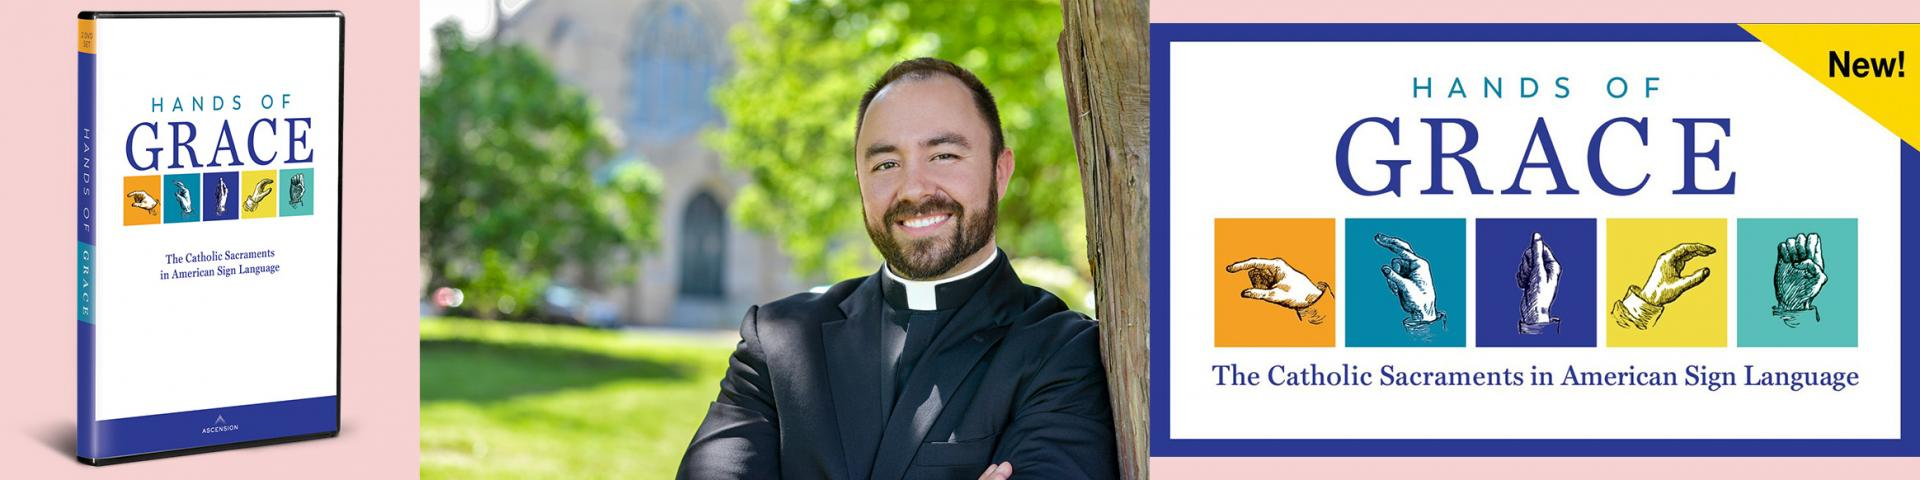 """Father Sean Loomis, Hands of Grace video series logo """"The Catholic Sacraments in American Sign Language"""""""